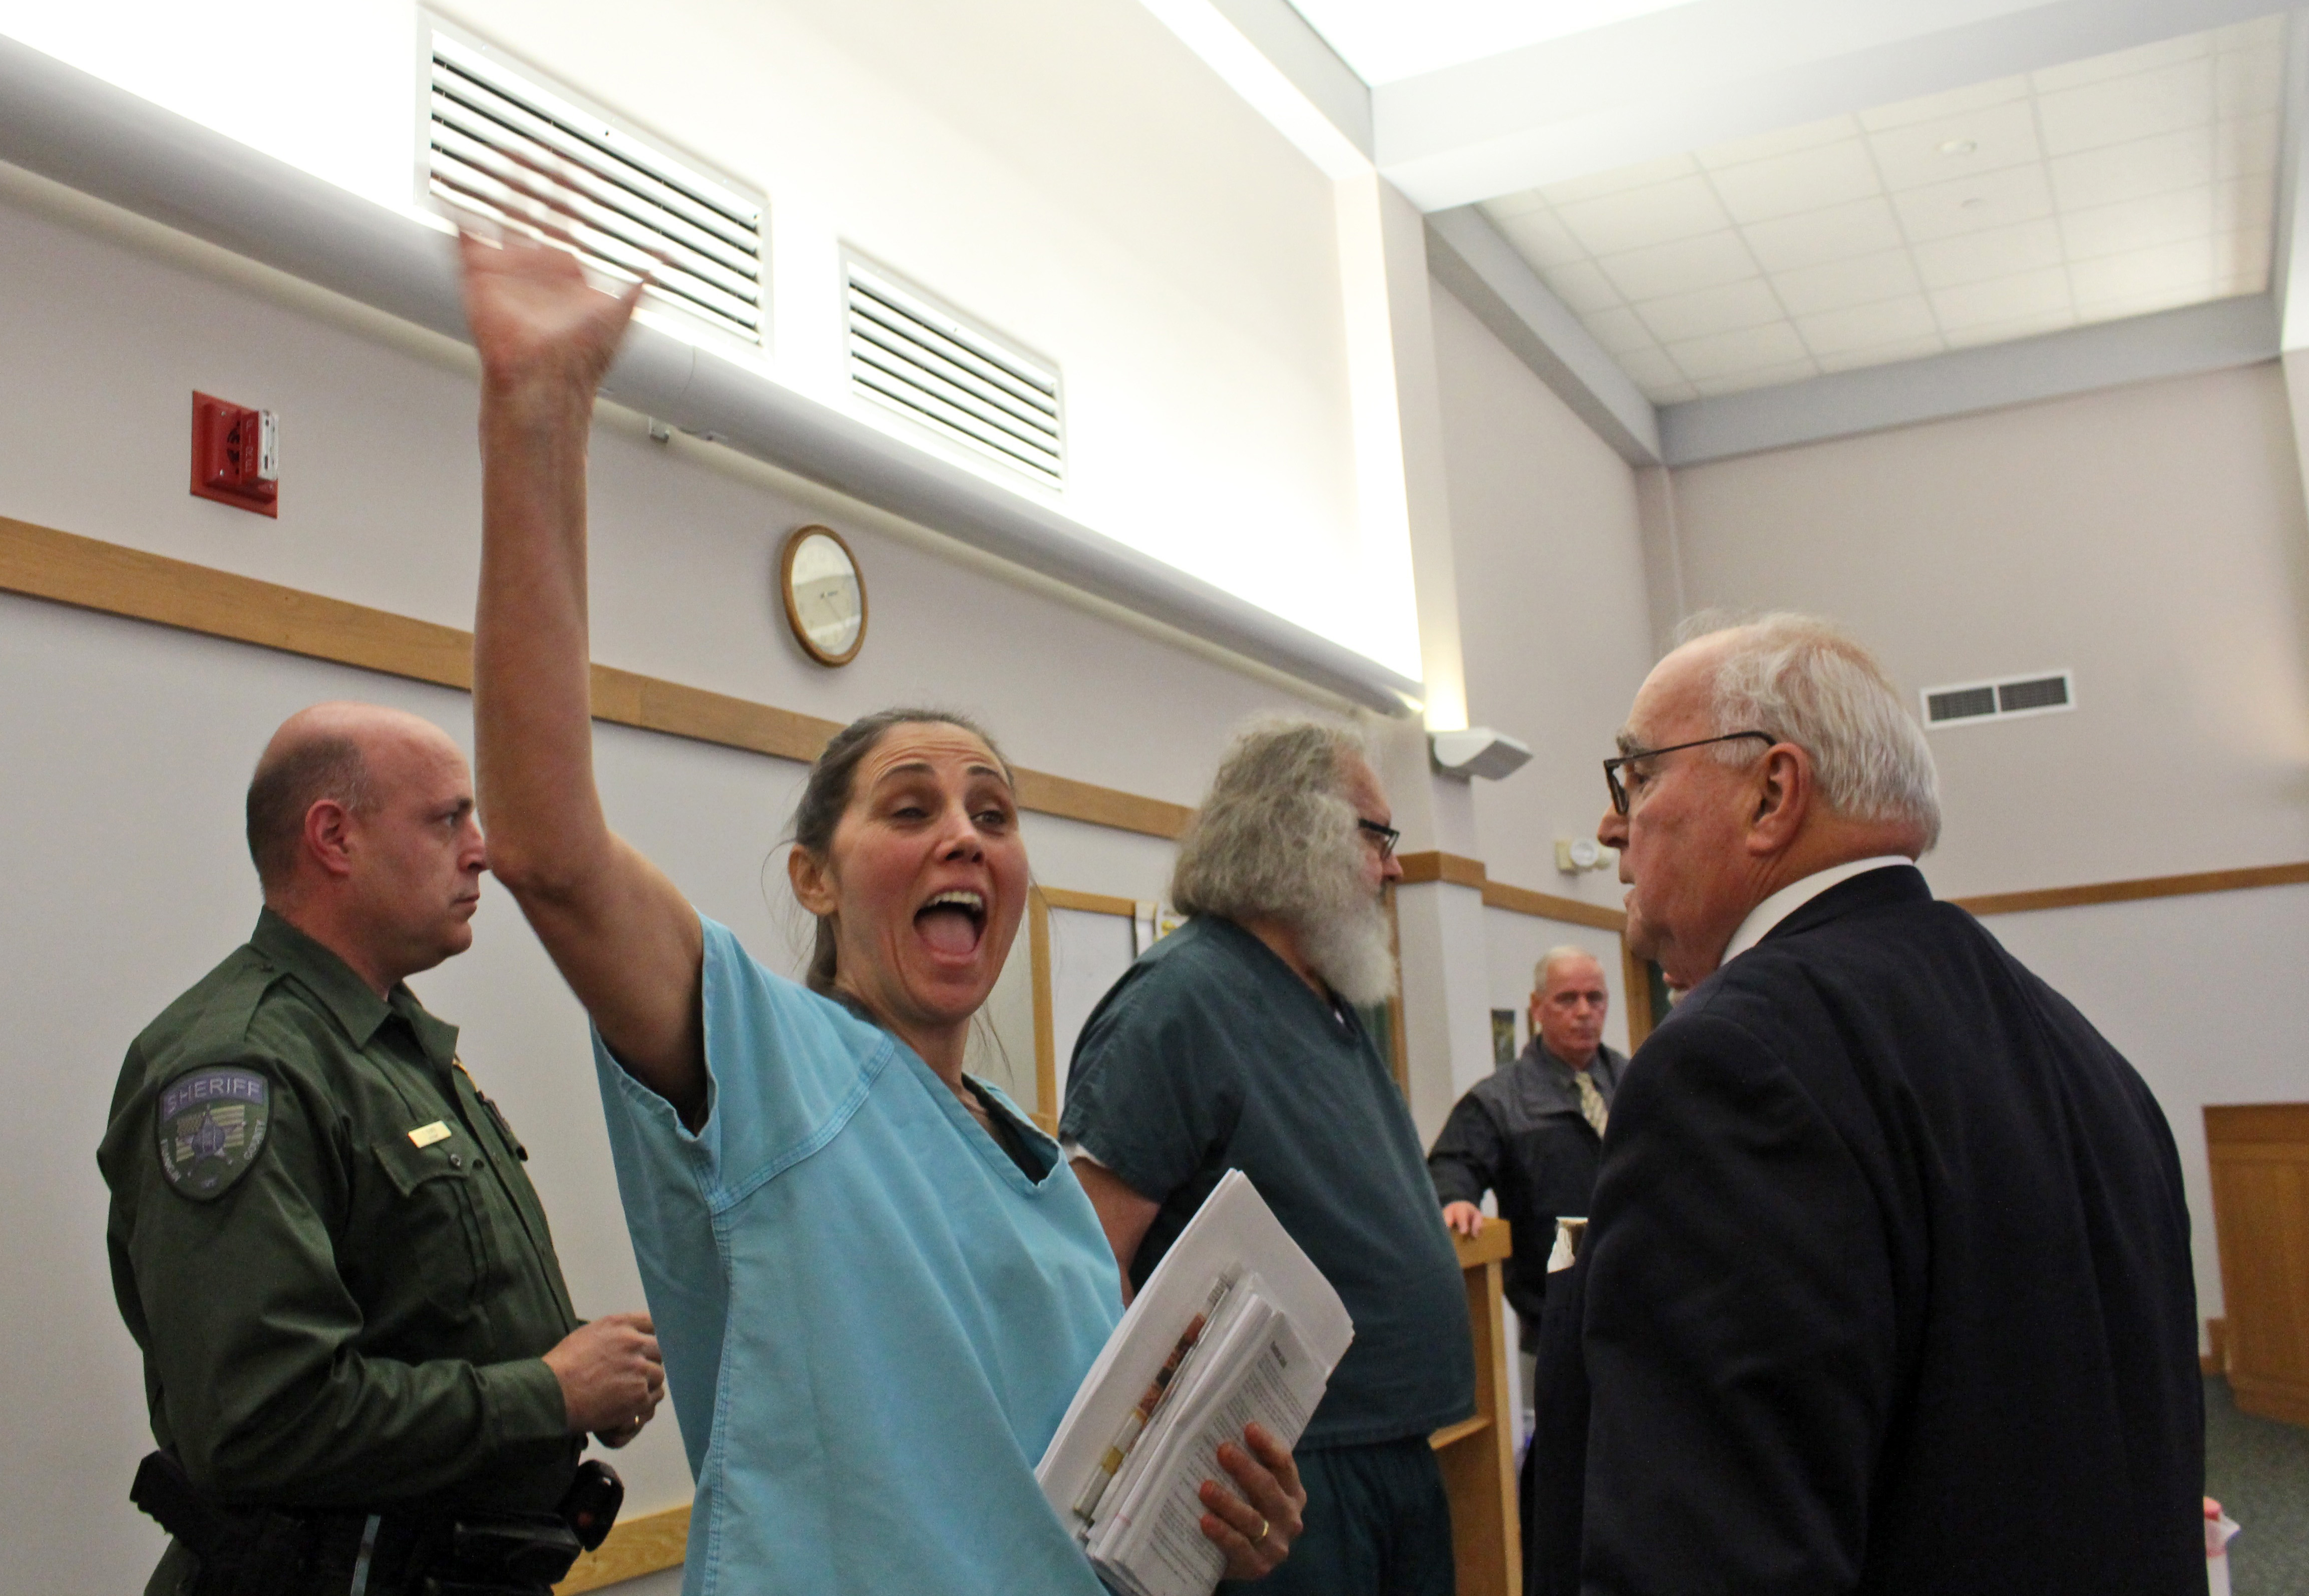 Evi Quaid, center left, waves after she and her husband actor Randy Quaid, center rear, had their handcuffs removed in court ,Thursday, Oct. 15, 2015, in St. Albans, Vt. A Vermont judge released the couple, who says they'll now address 5-year-old criminal charges in California.  (Elodie Reed/St. Albans Messenger via AP, Pool)